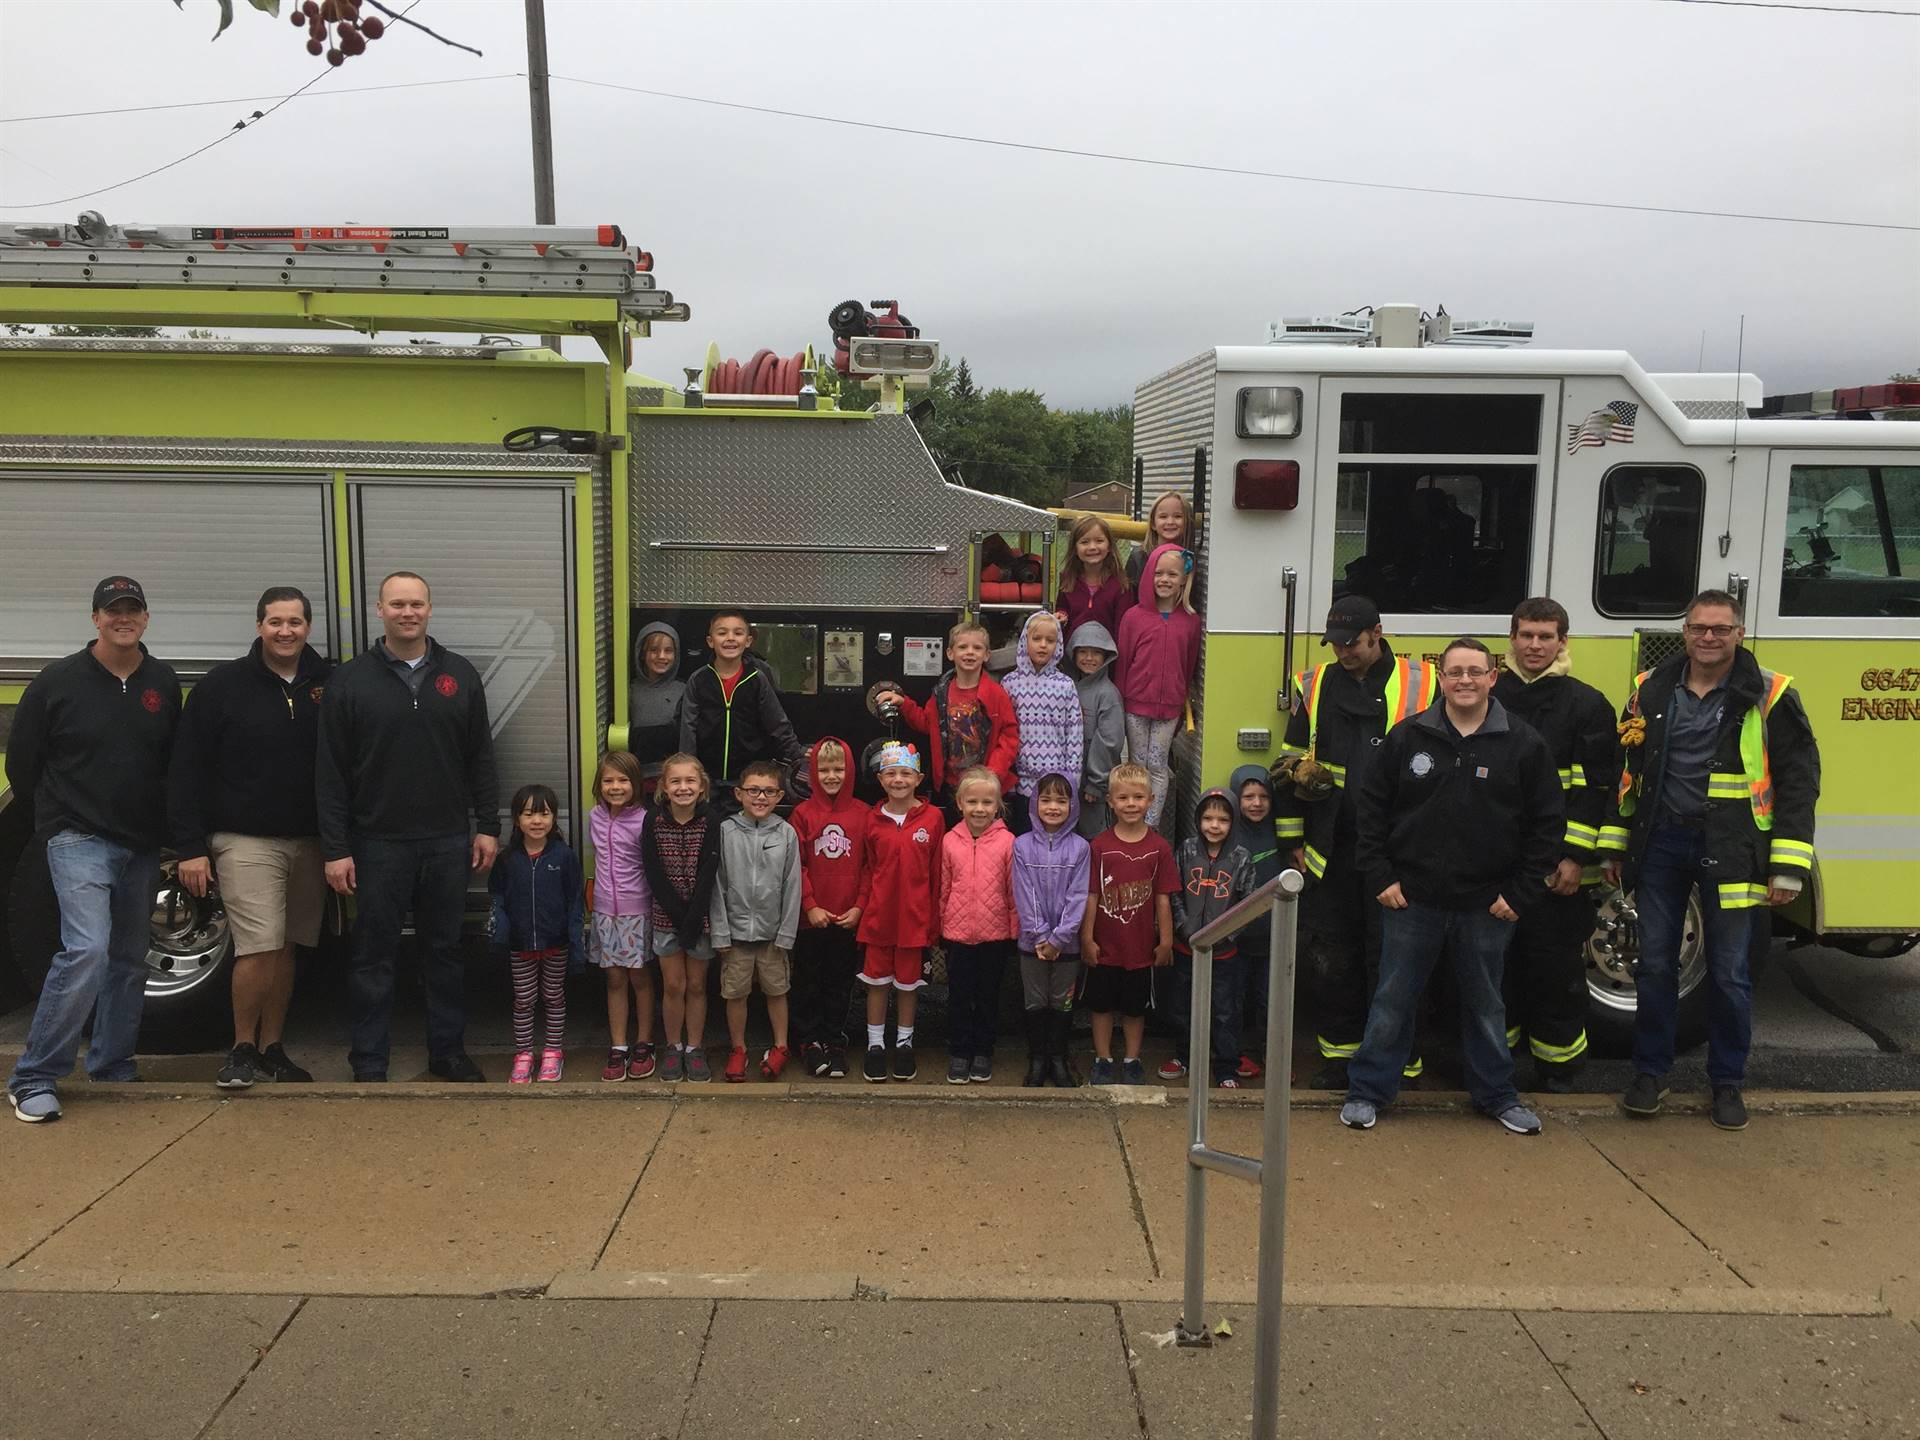 Fire Safety... Fire Truck Visit!